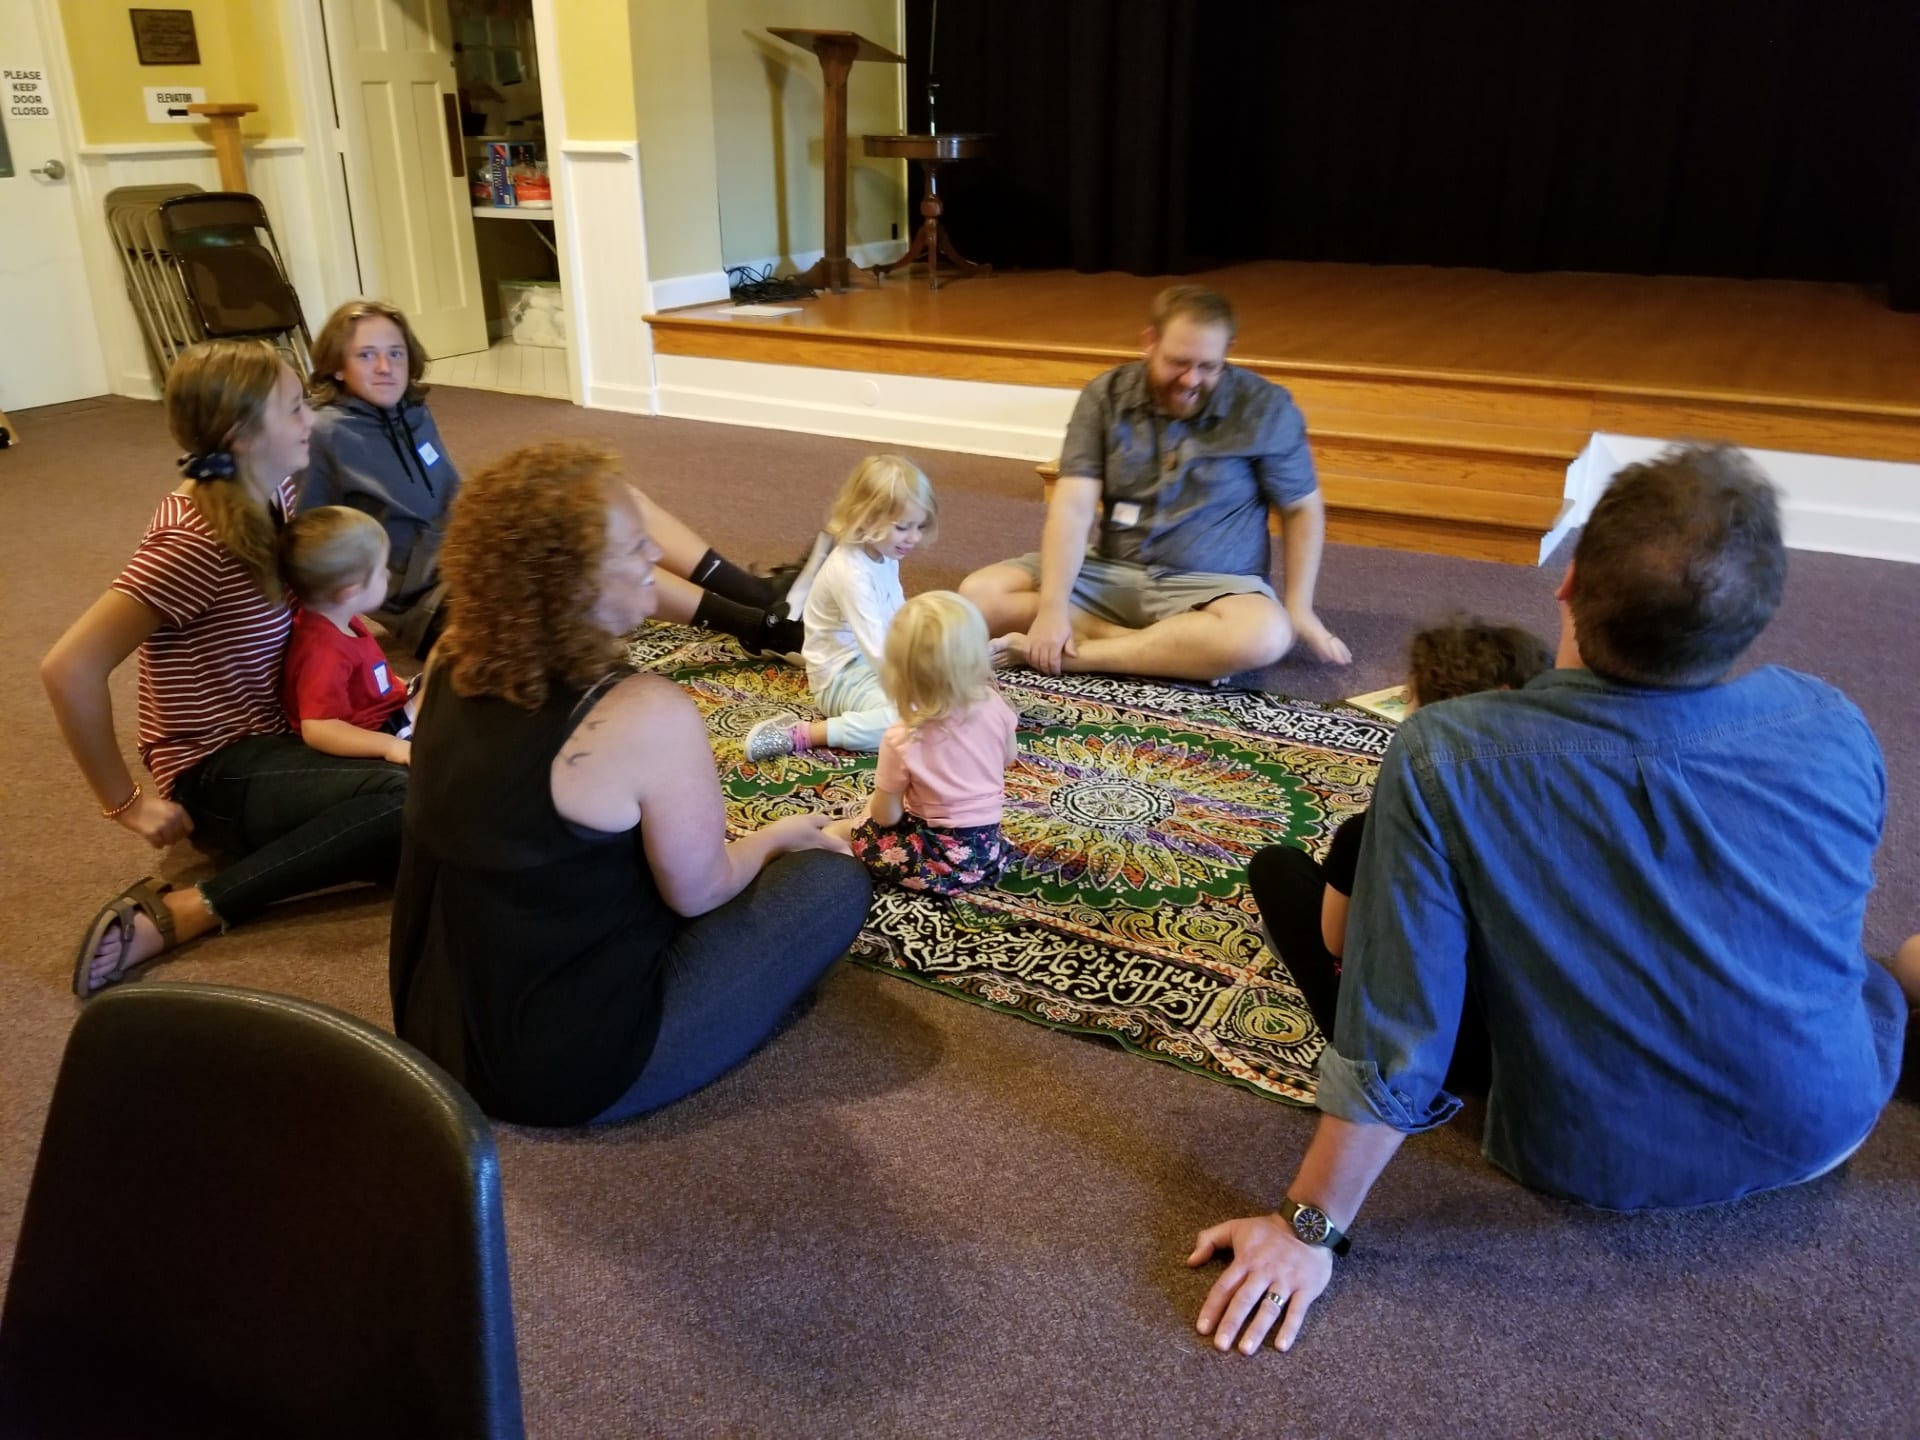 vacation bible school 20190727 094400 - St. Philip's Episcopal Church